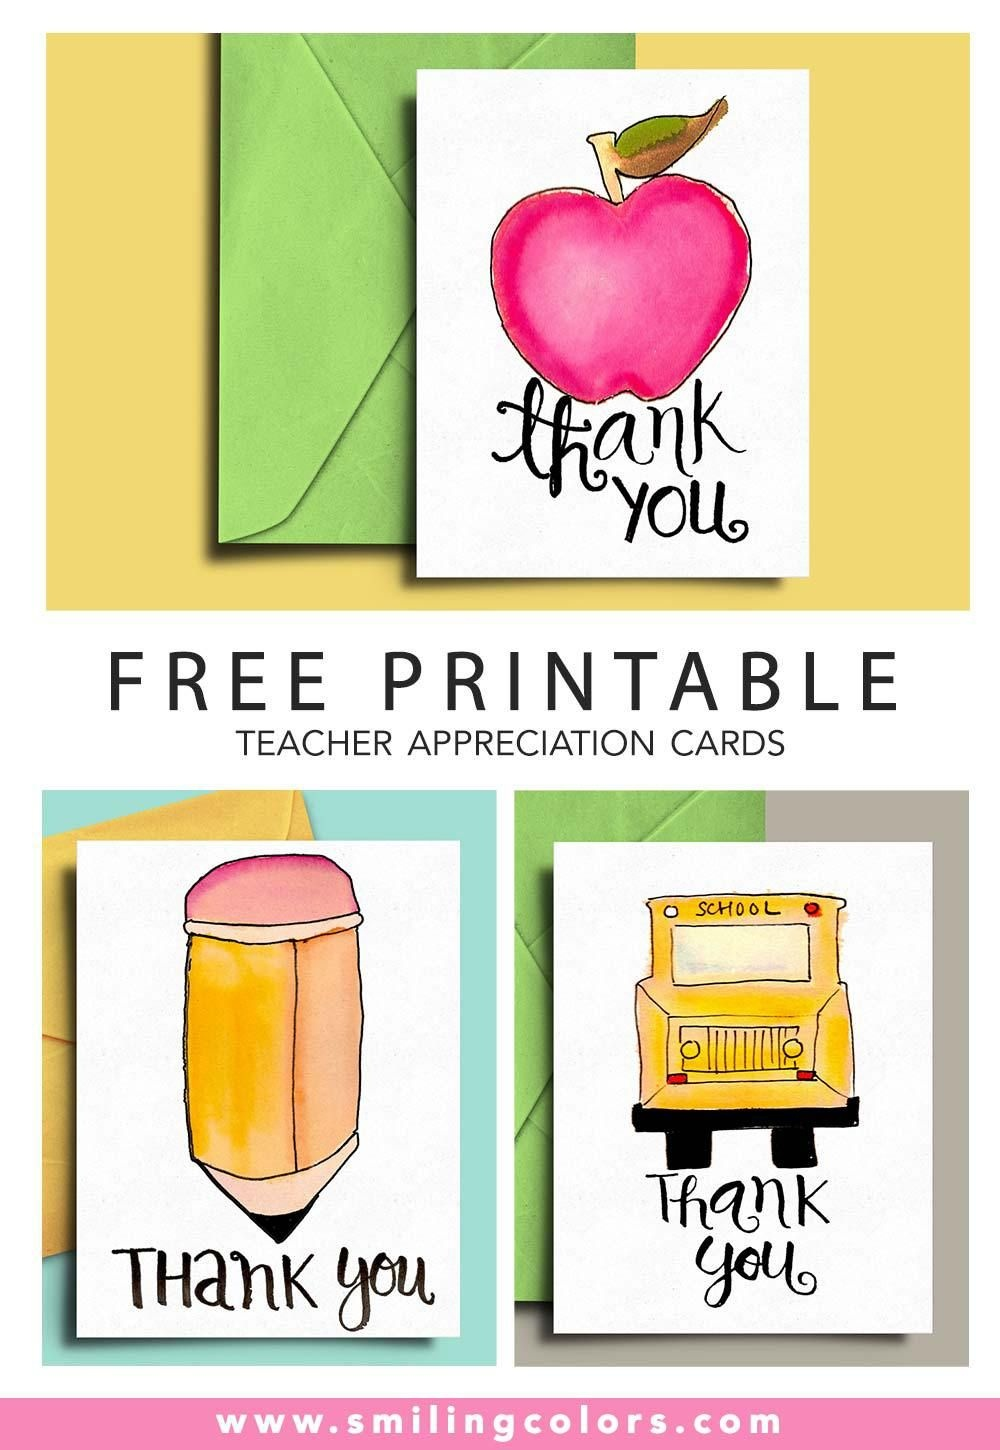 Thank You Card For Teacher And School Bus Driver With Free - Free Printable Teacher Appreciation Cards